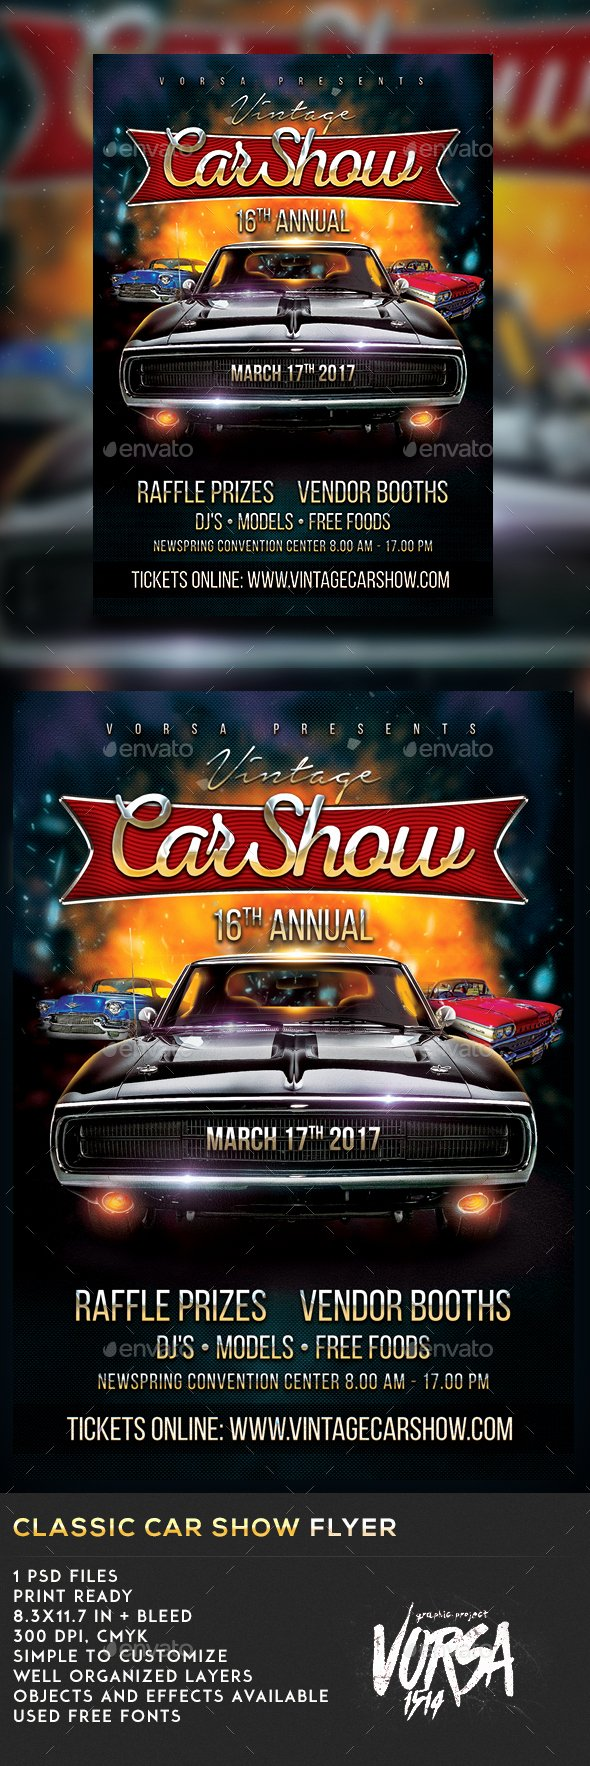 Car Show Flyer Template Lovely Classic Car Show Flyer by Vorsa